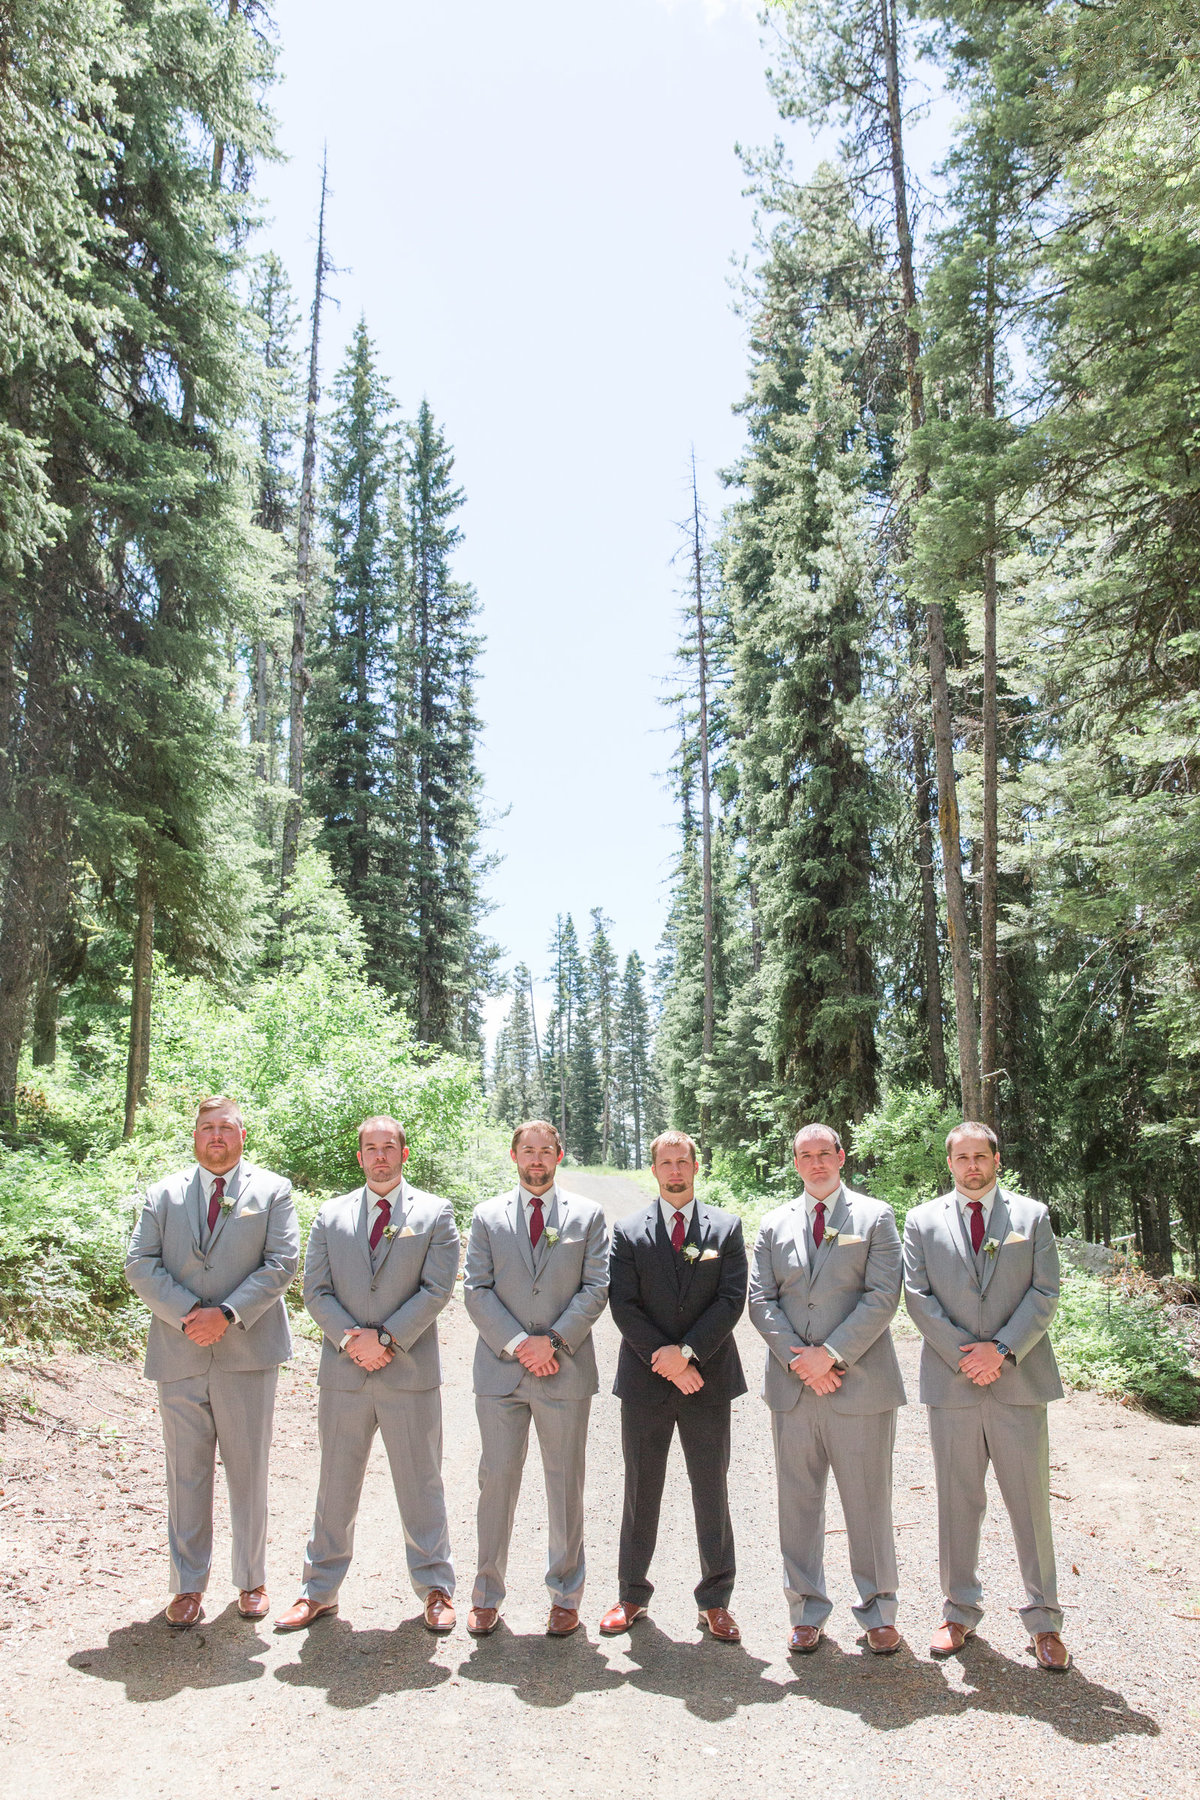 McCall Idaho Wedding Photographer_20180630_043